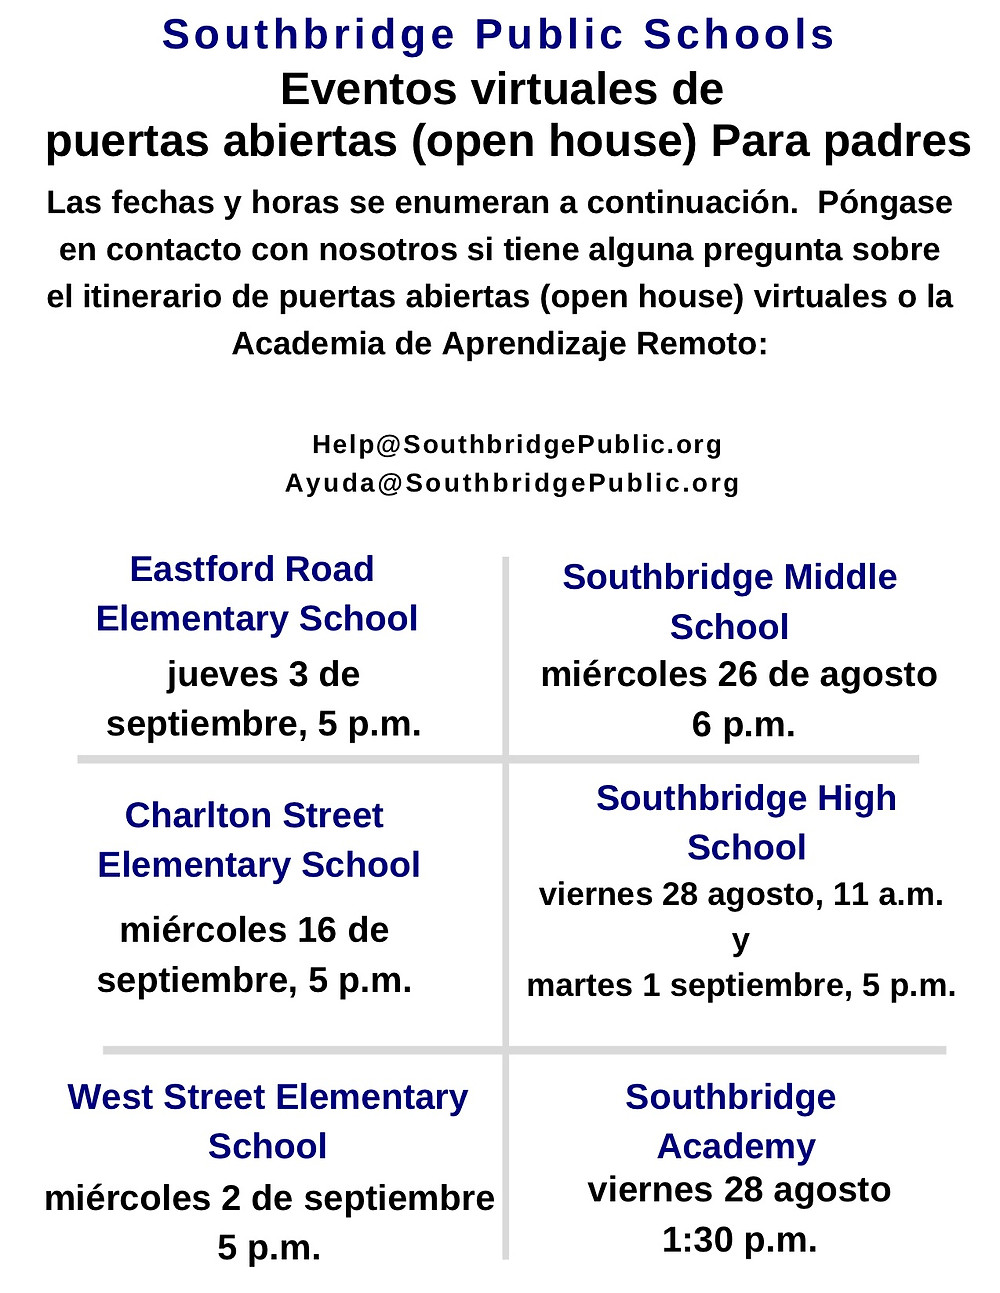 Flyer in Spanish for virtual open house events. All content is also available in the body of this blog post